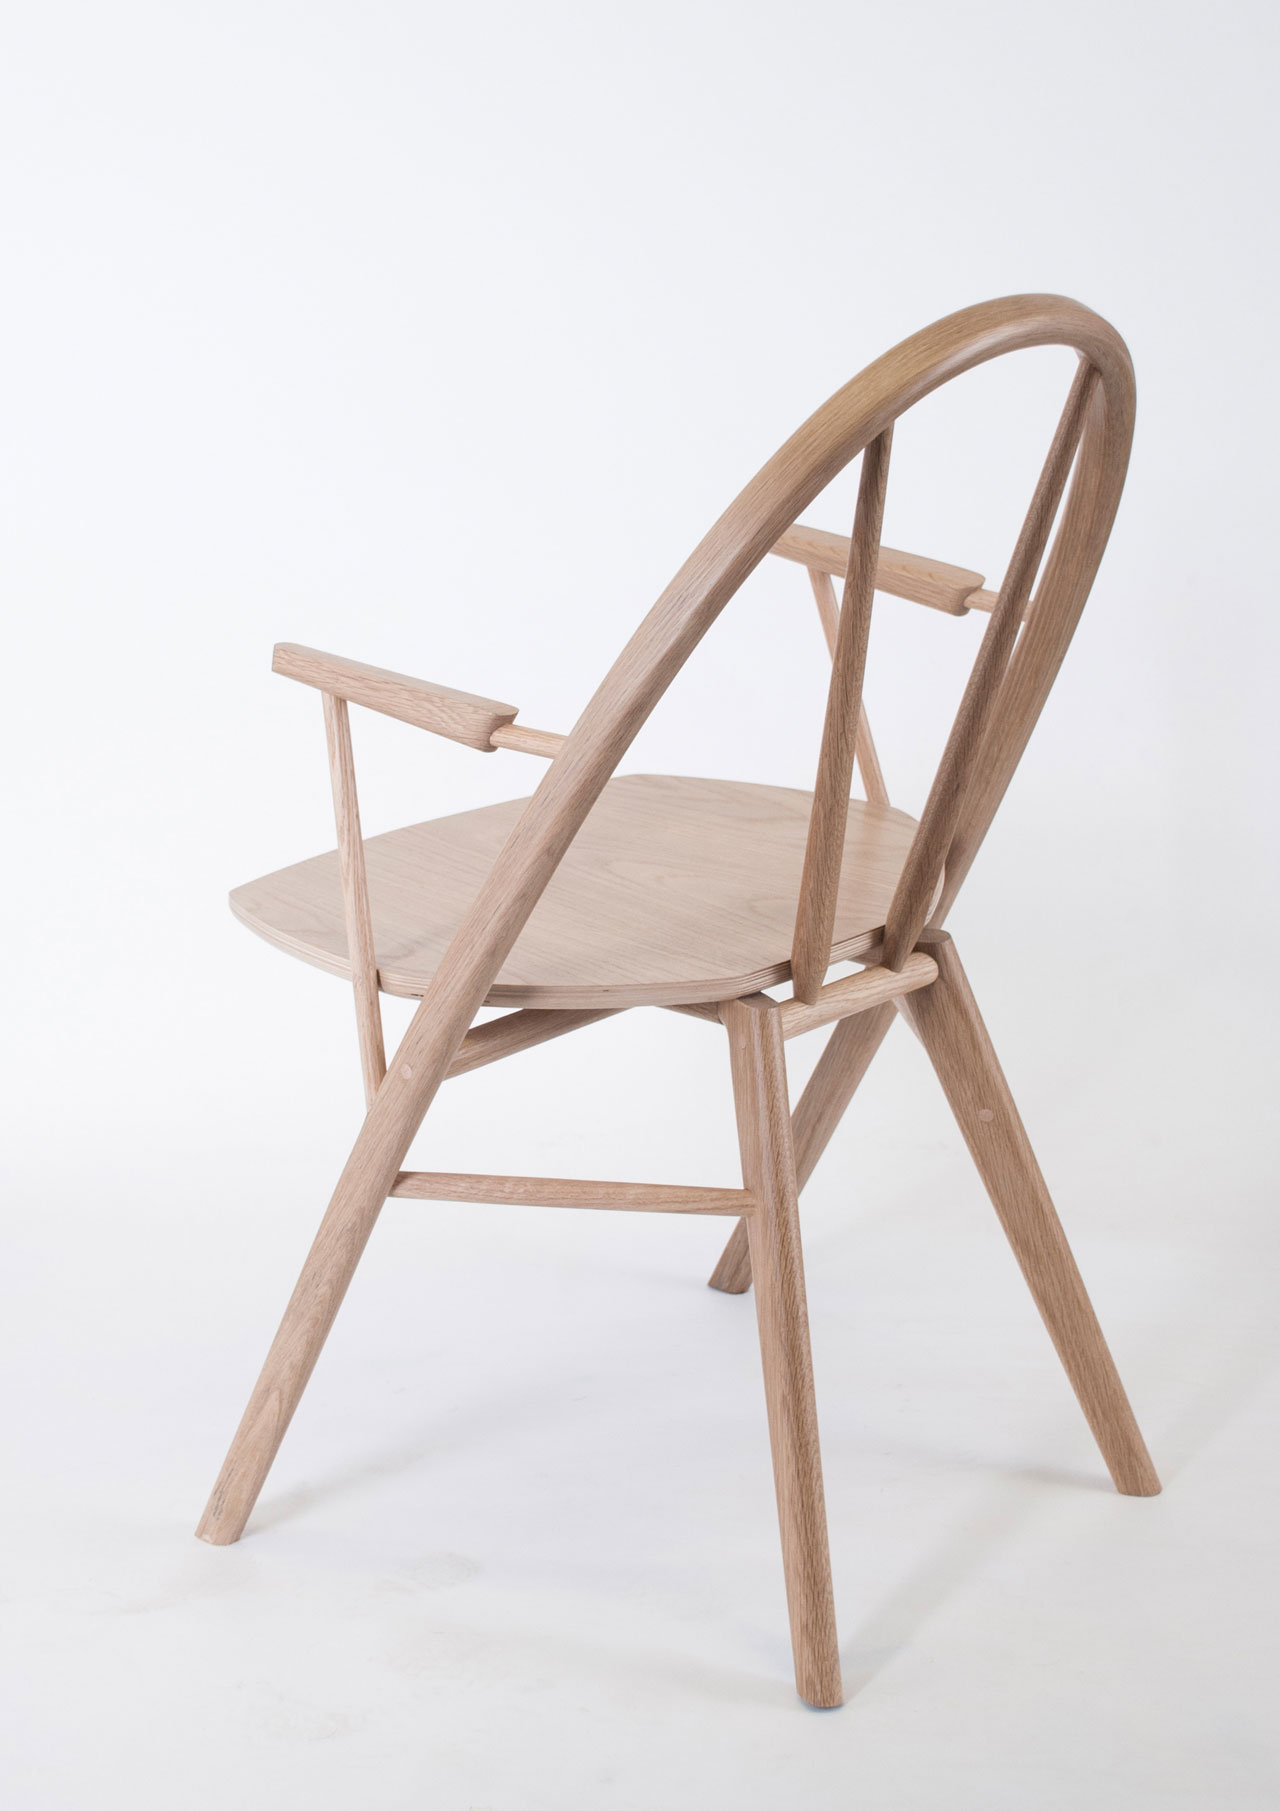 The Bow Chair by Taylor McKenzie-Veal (US), winnerof Interieur Awards - Objects Category.